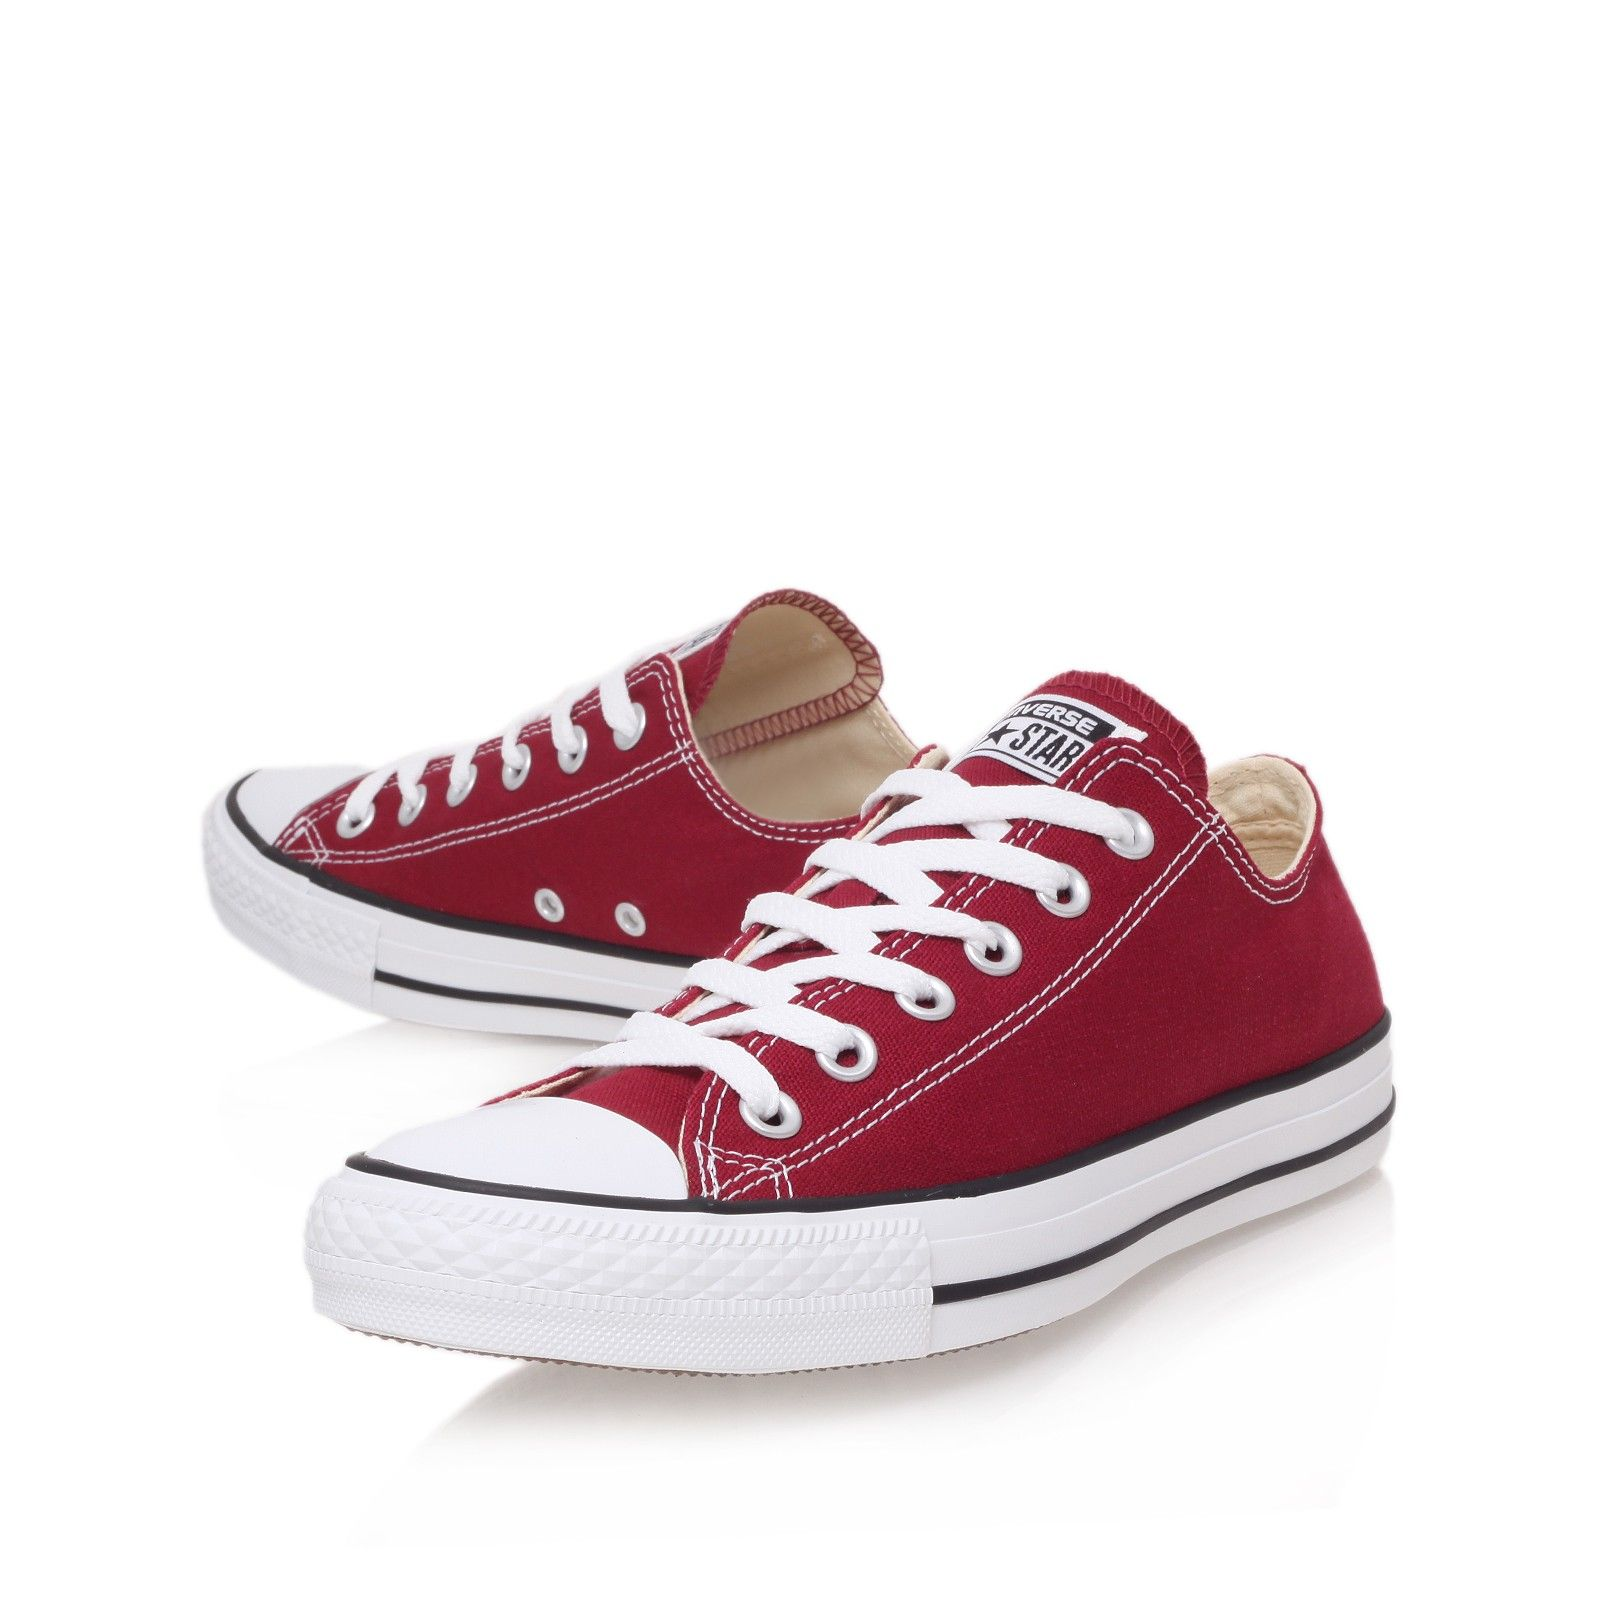 all star low wine flat low top trainers from converse mens